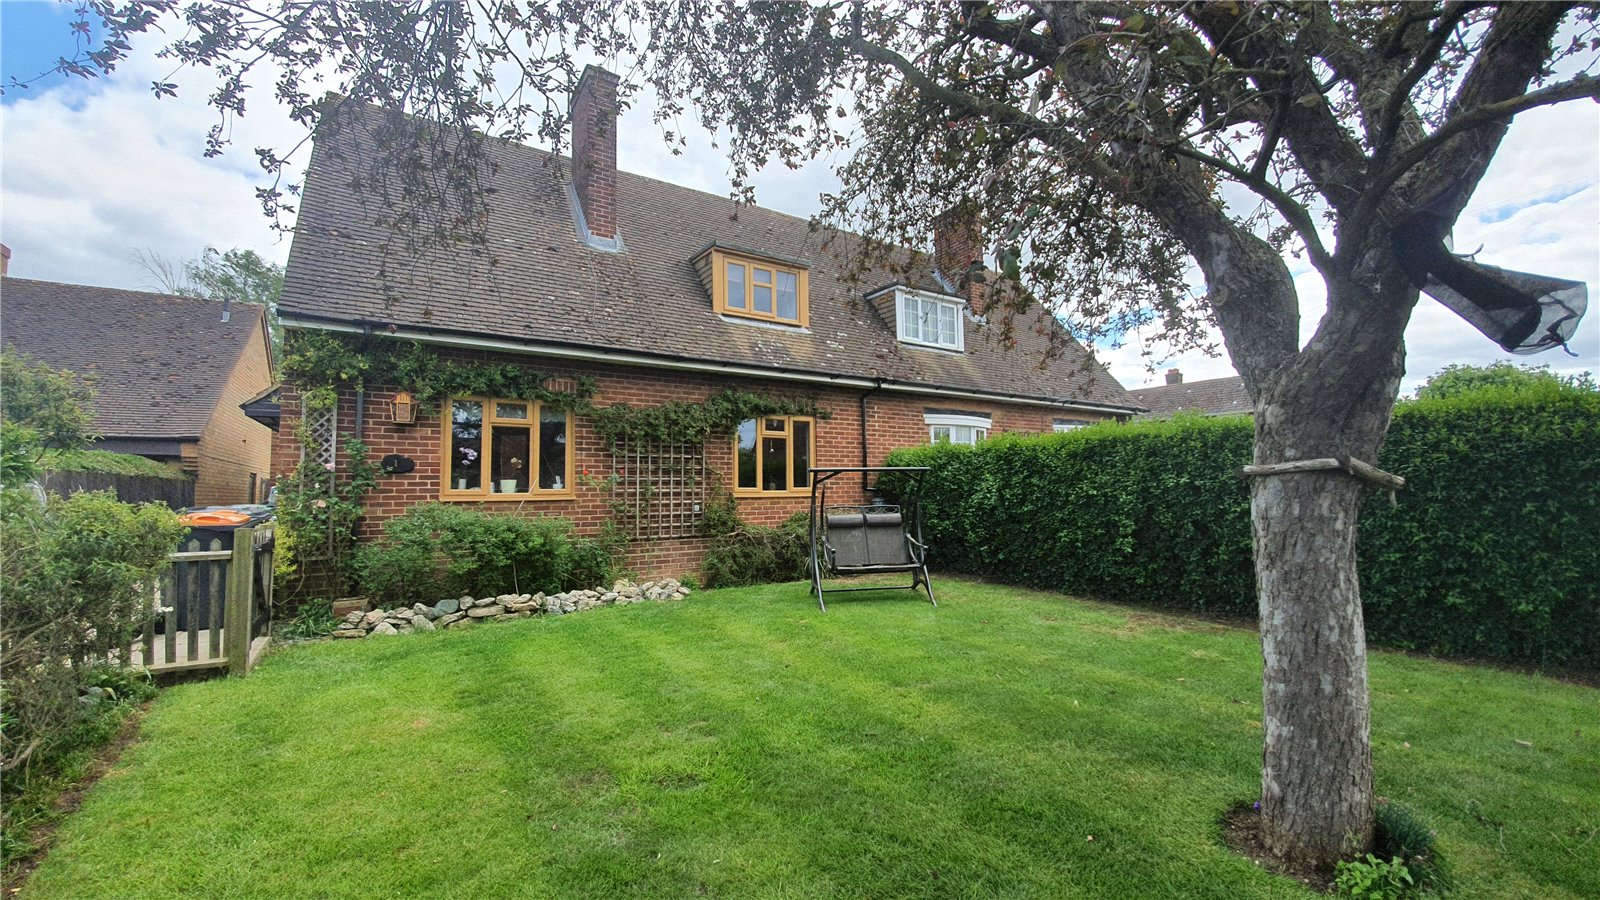 4 bed house for sale in Roxton, Saxon Close, MK44 3EP  - Property Image 1